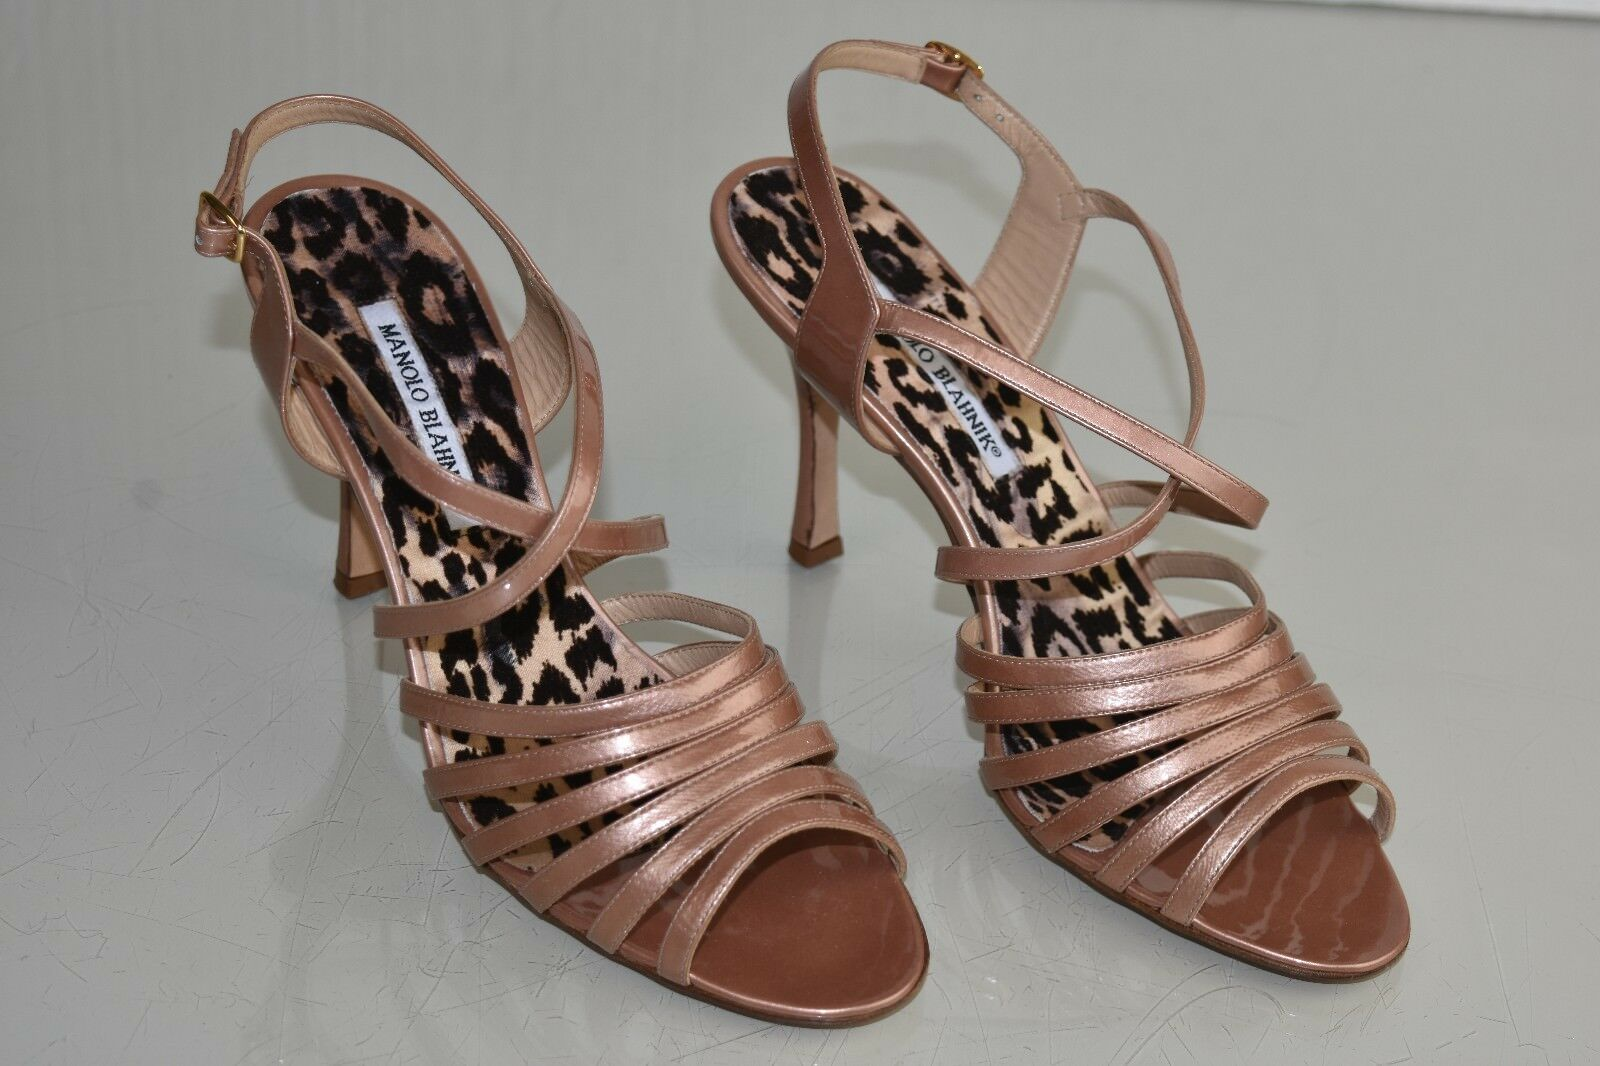 775 775 775 New MANOLO BLAHNIK LEOPARD pearly beige nude patent SANDALS SHOES 40.5 41031e